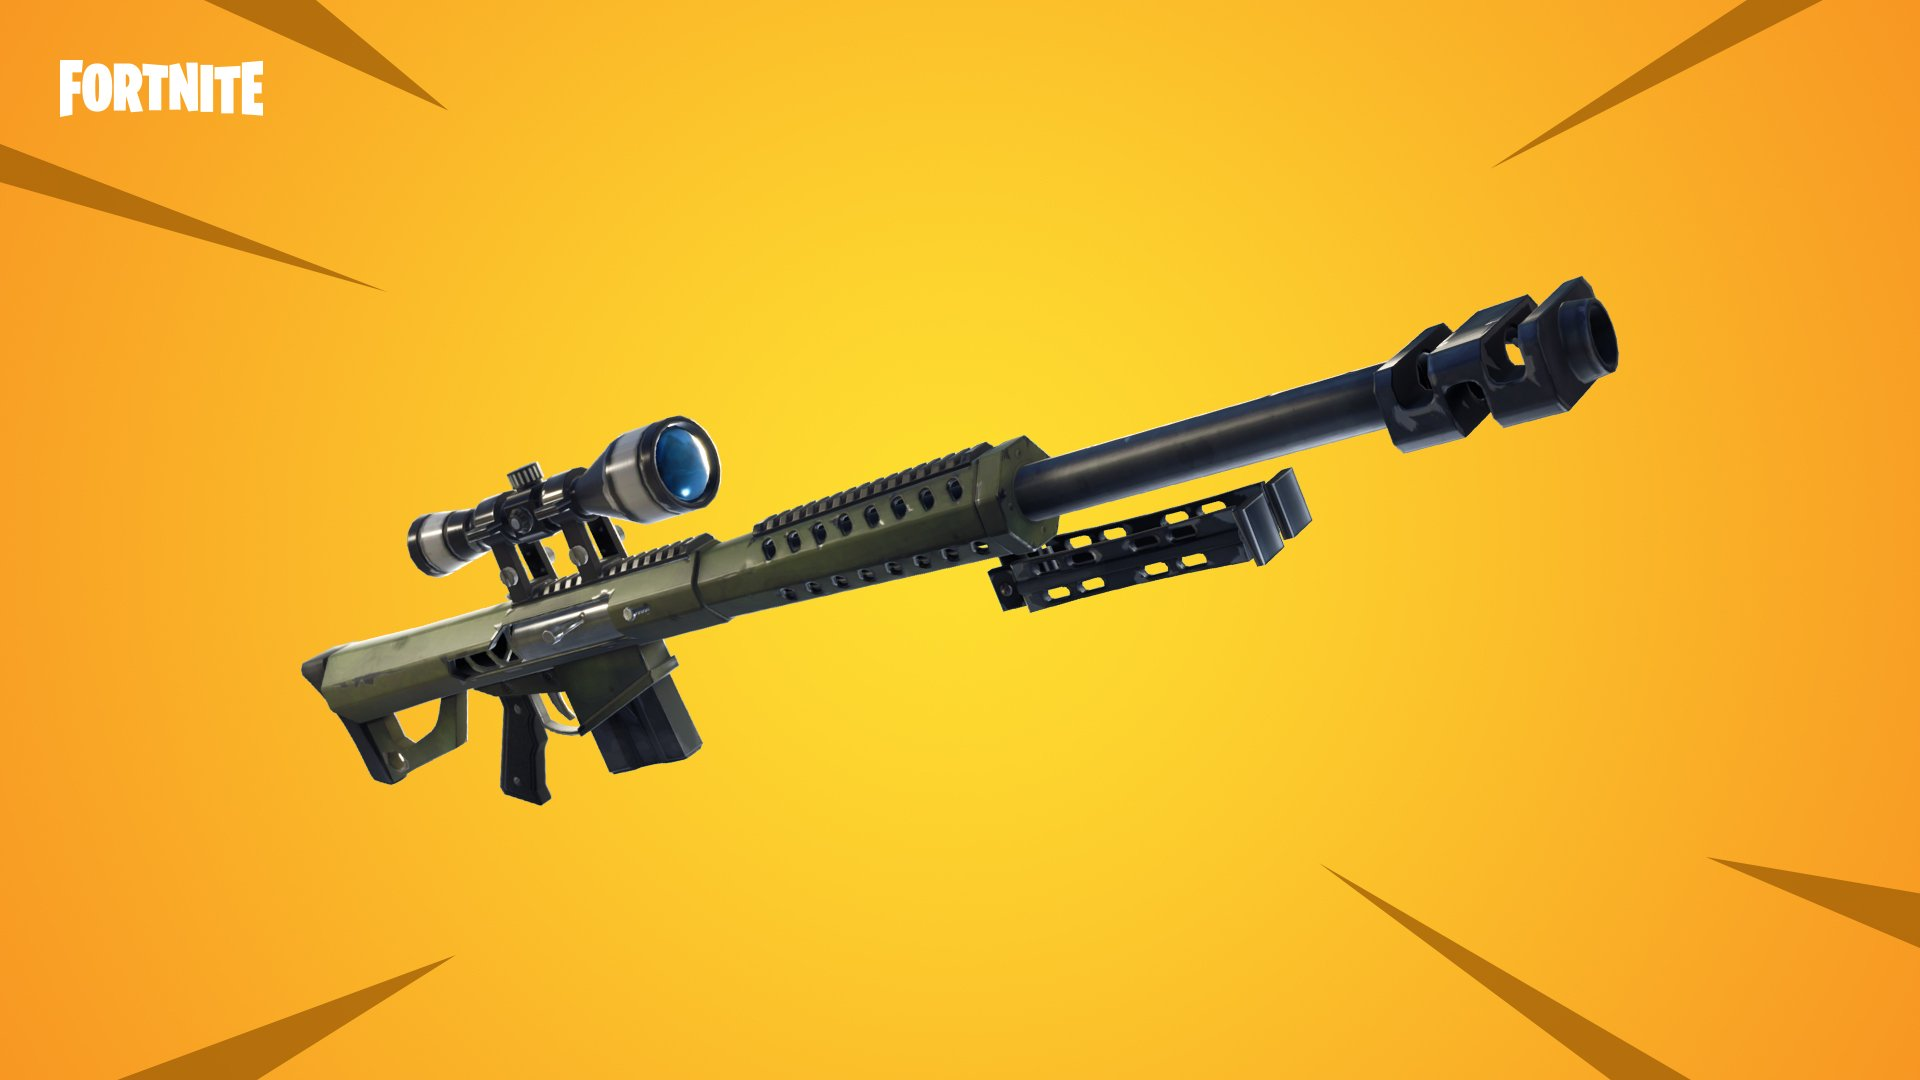 Fortnite Patch 5.21 Introduces Lethal Heavy Sniper Rifle & Two LTMs